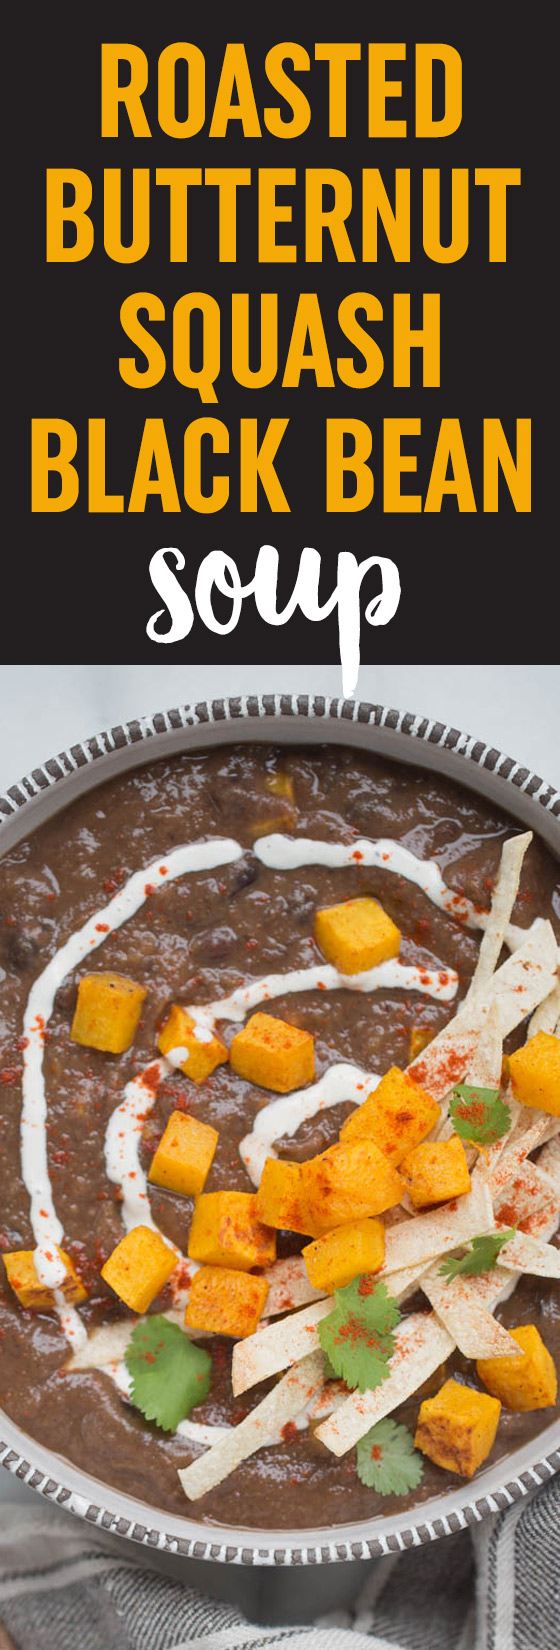 Roasted Butternut Squash Black Bean Soup is a hearty, warming soup that's perfect for chilly fall and winter evenings. Packed with protein, so easy to make, and extremely satiating. #vegansoup #veganfallsoup #easysoup